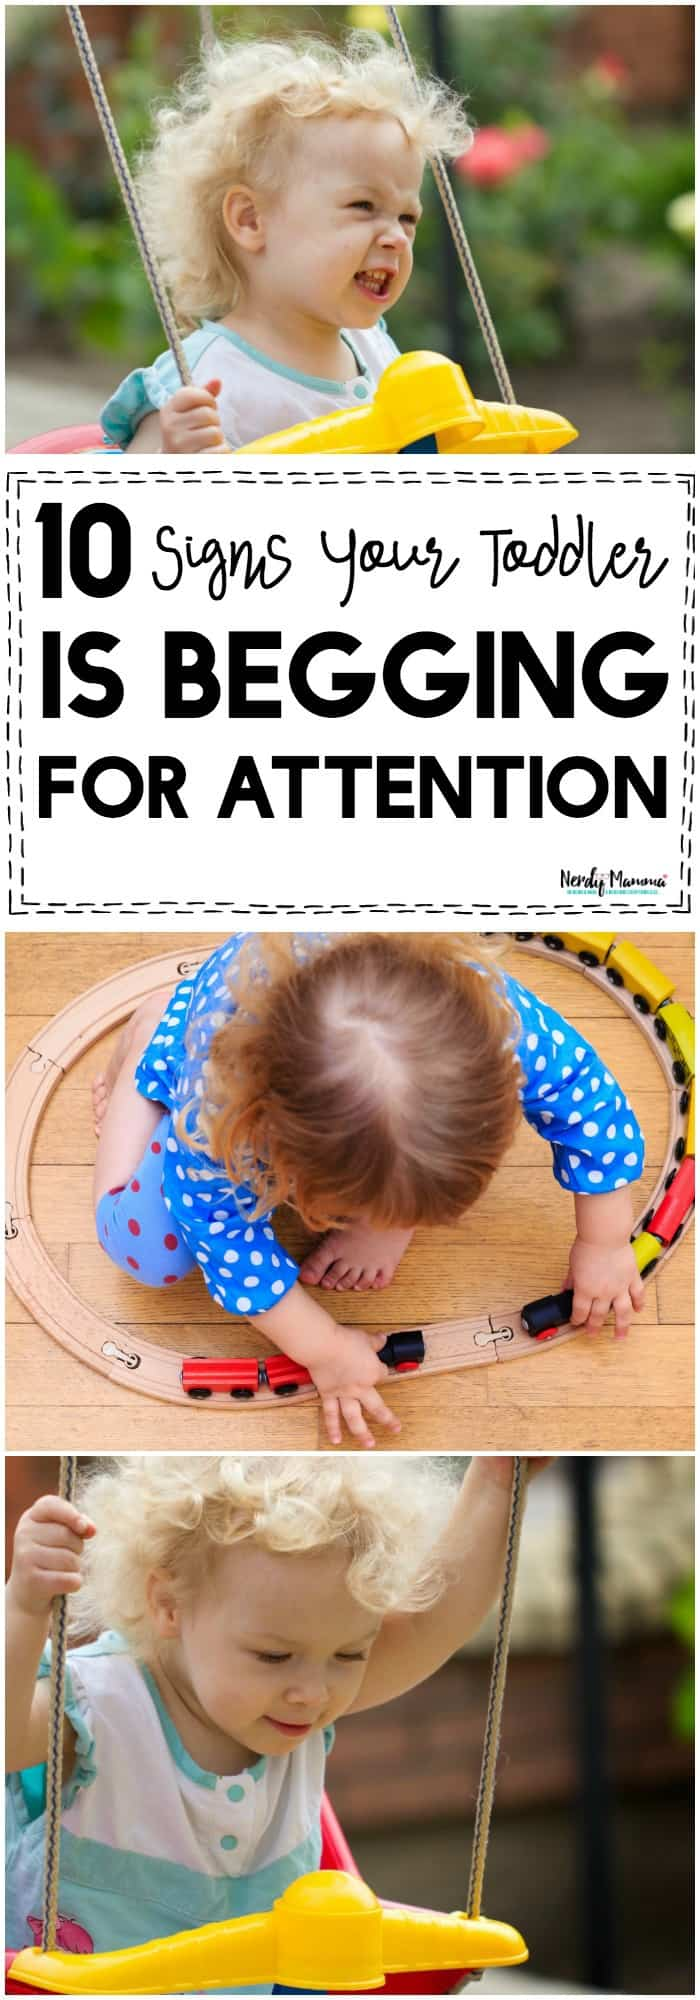 Is your toddler begging for attention? Check out this list!